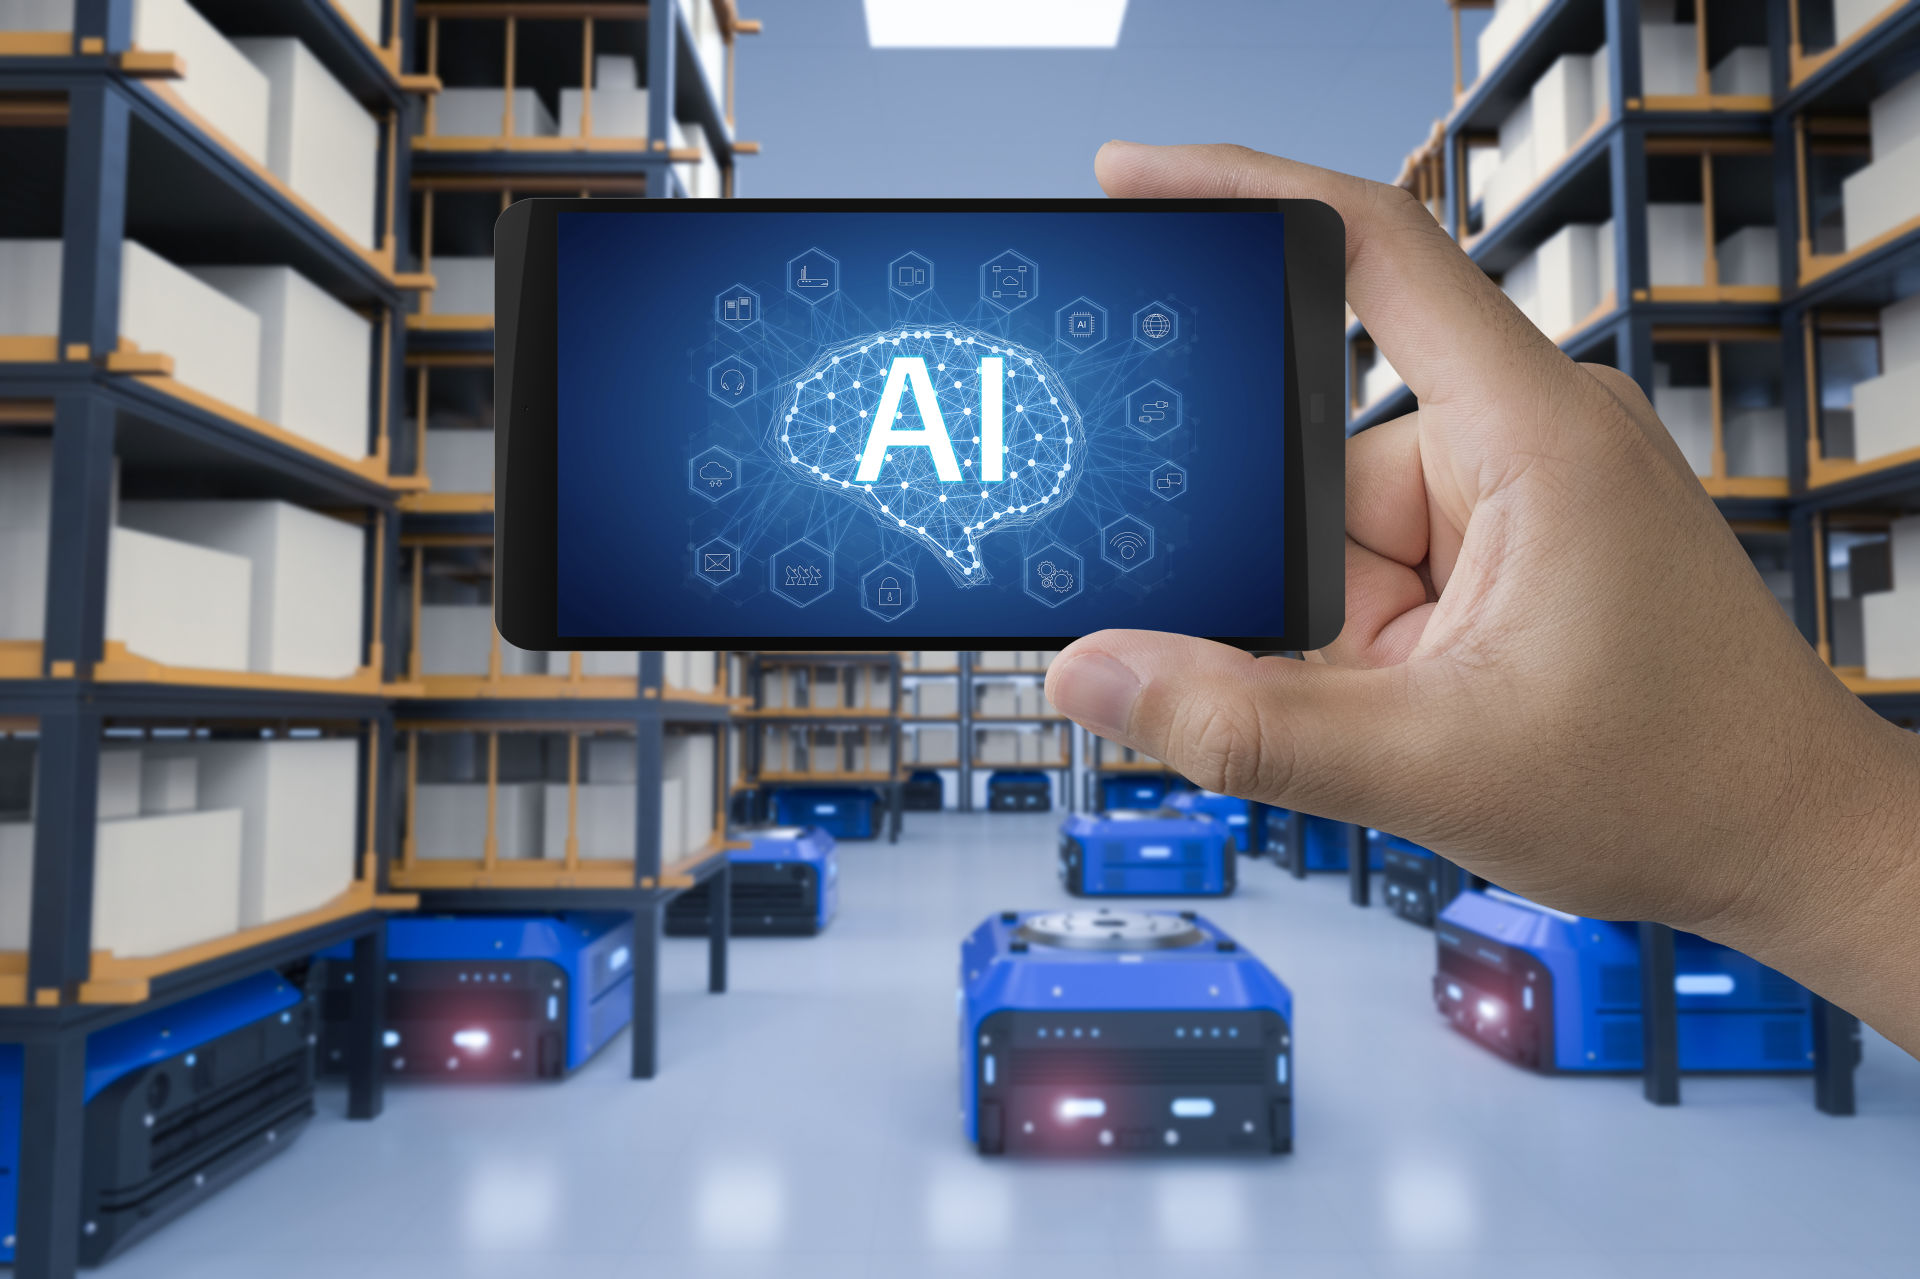 Warehouse Technology: Artificial Intelligence (AI)